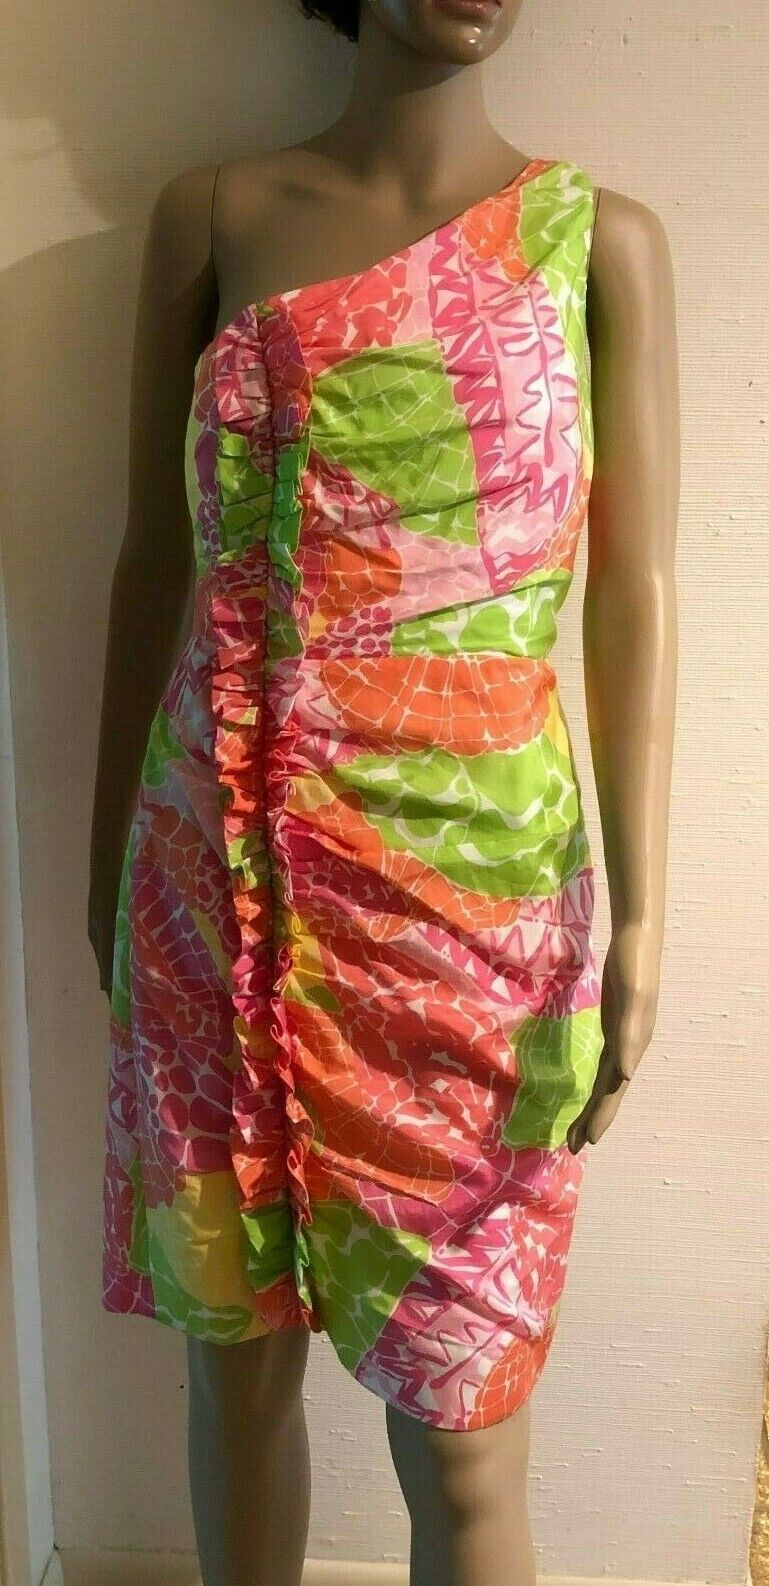 Lilly Pulitzer Silk Blend One Shoulder Rosa Grün Gelb Shell Dress Größe 6 NWOT